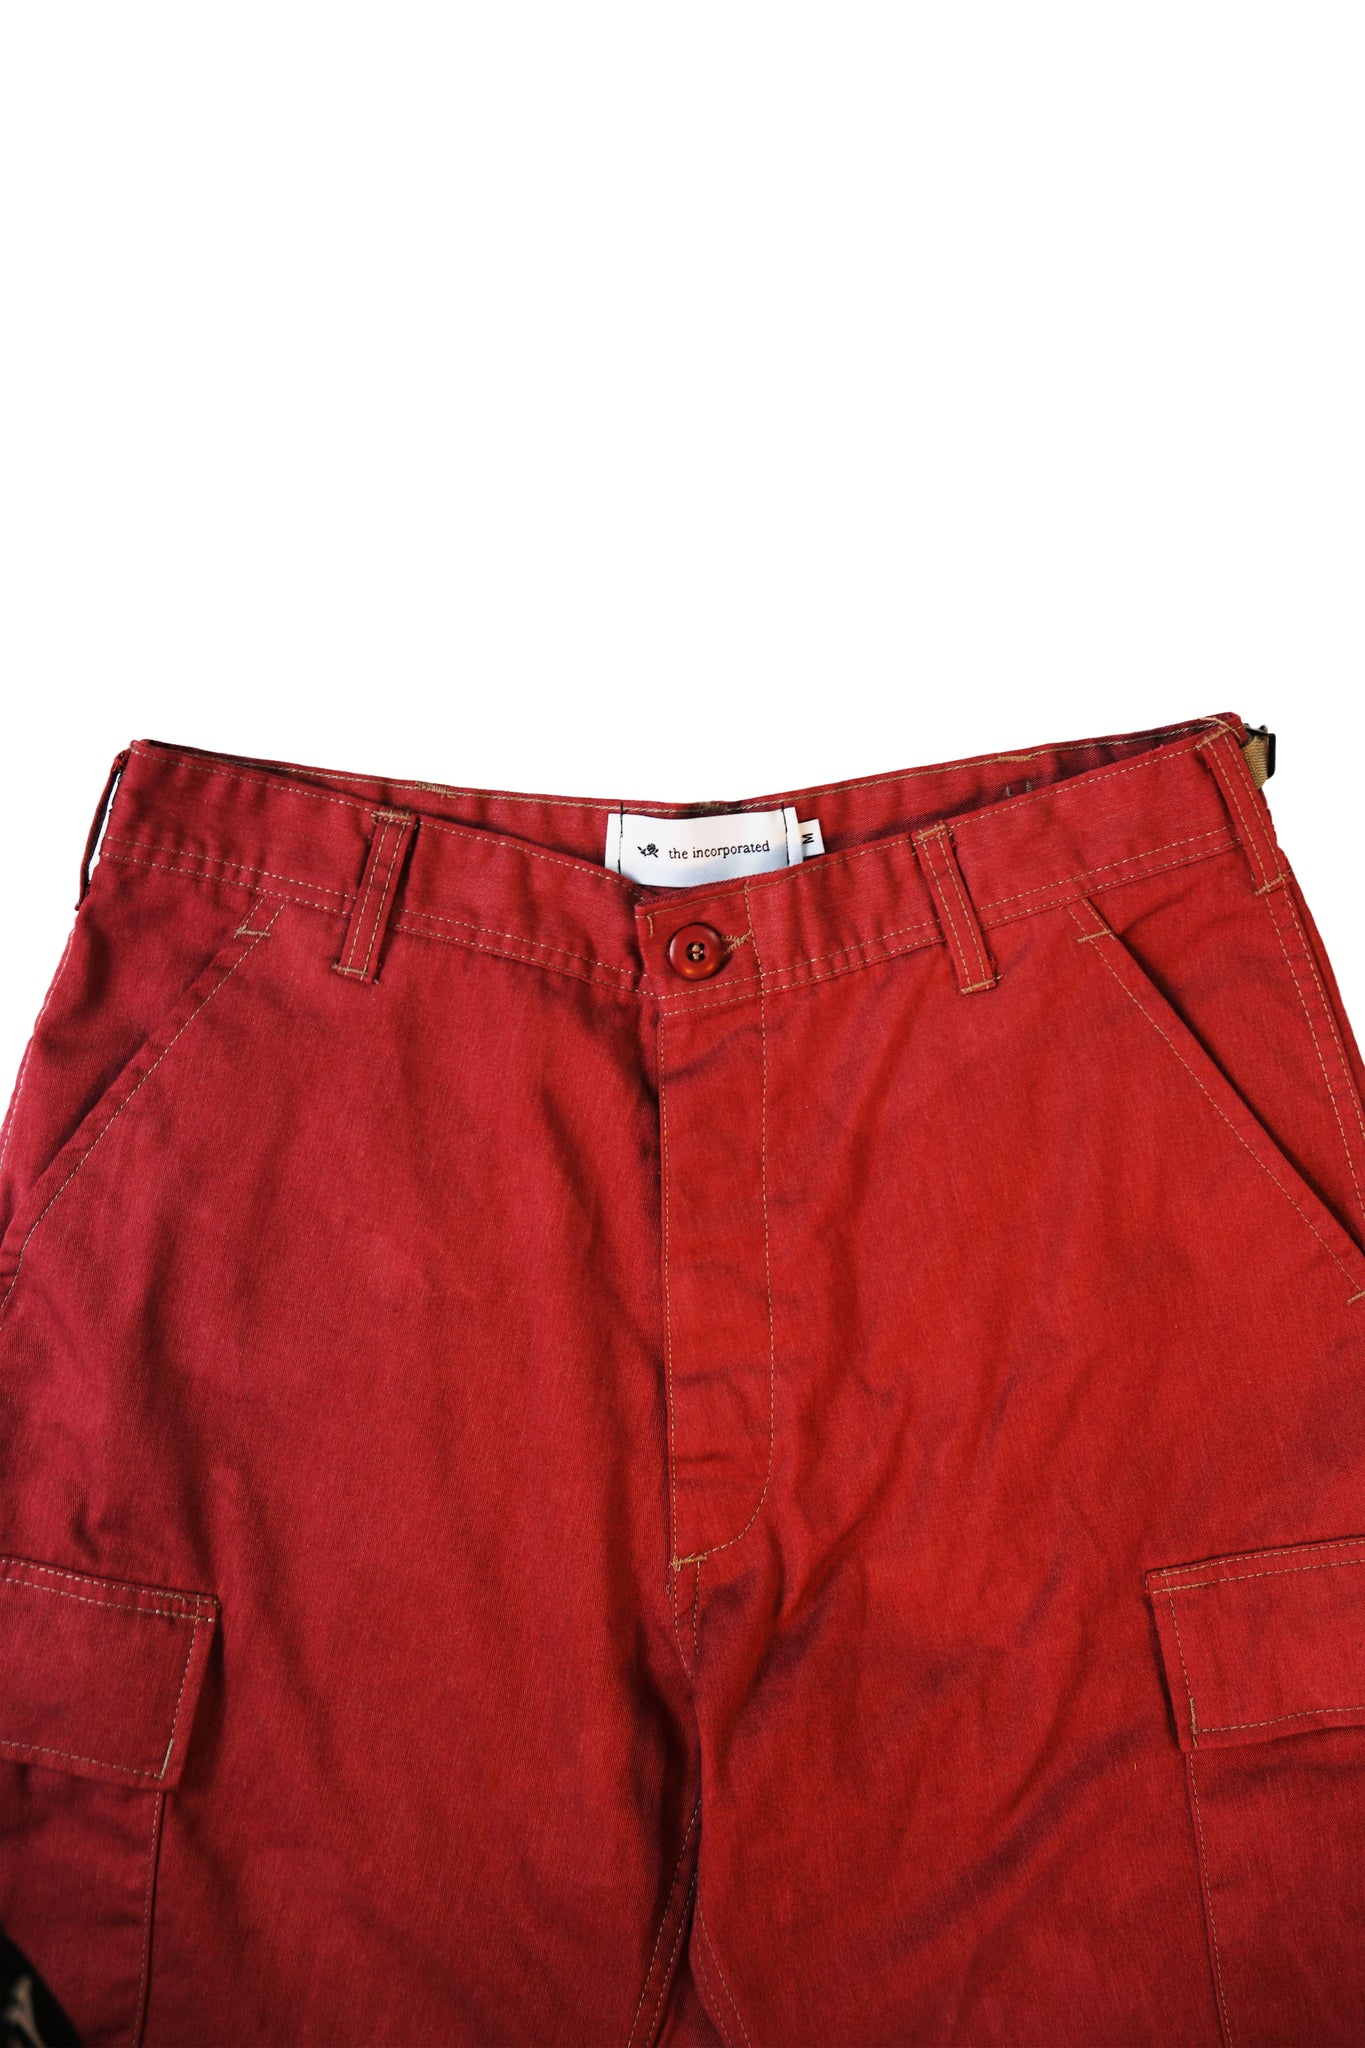 THE AGITATOR Cargo Pants / RED - The Incorporated